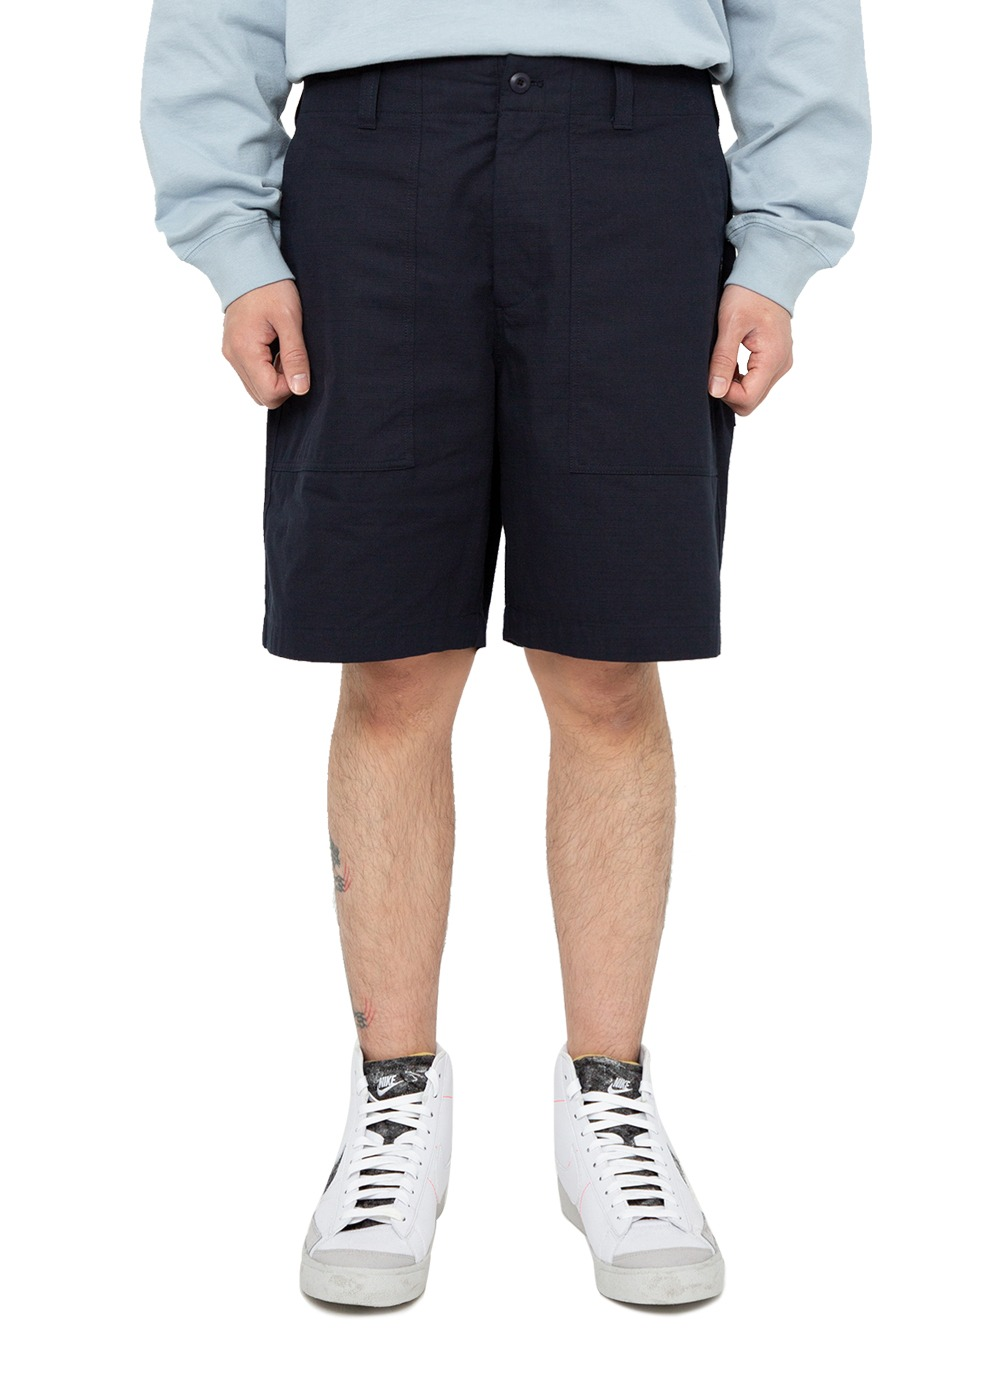 LMC RIPSTOP FATIGUE SHORTS navy